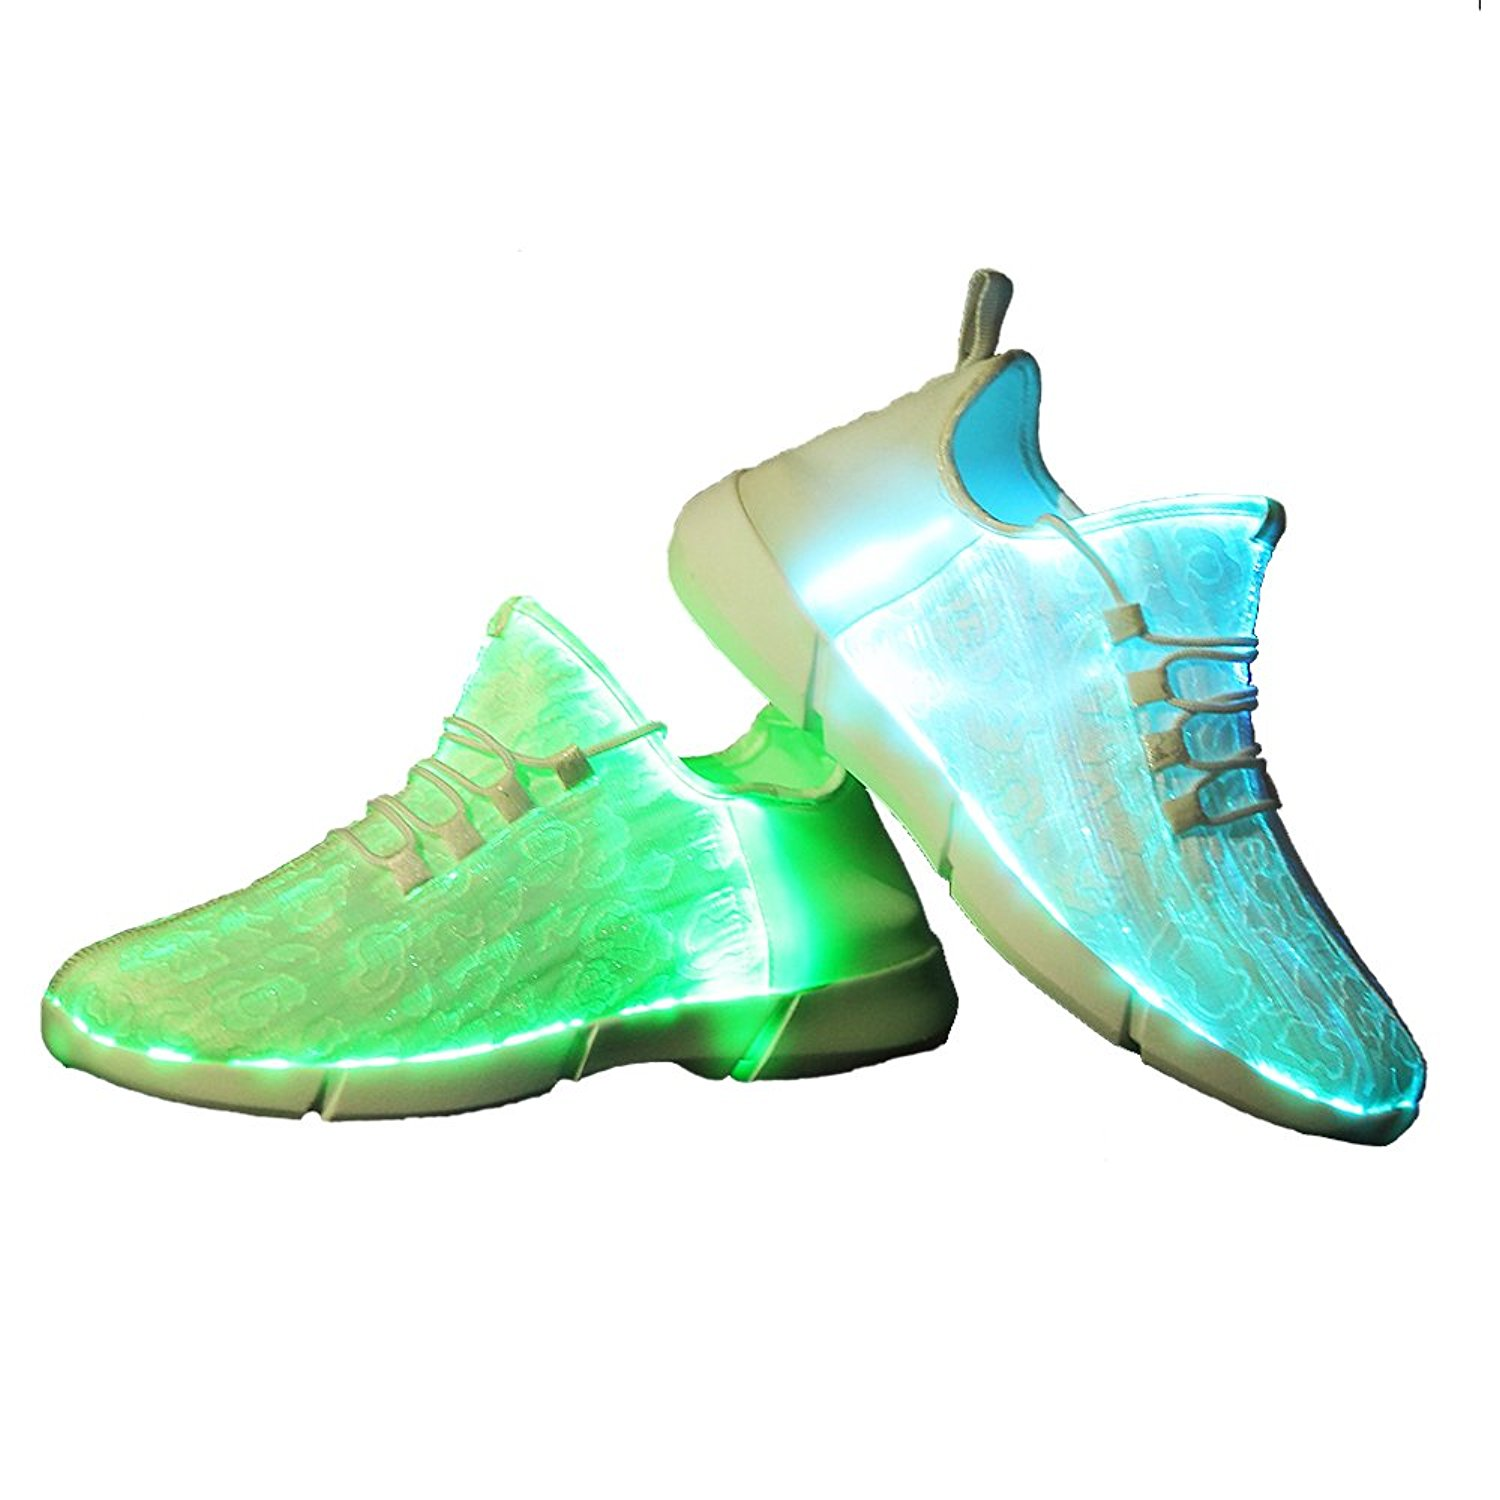 Luminous Fiber Optic Fabric Light Up Shoes 11 Colors Flashing  White Teenager Girls&Boys USB Rechargeable Sneakers with Light joyyou brand usb children boys girls glowing luminous sneakers teenage baby kids shoes with light up led wing school footwear